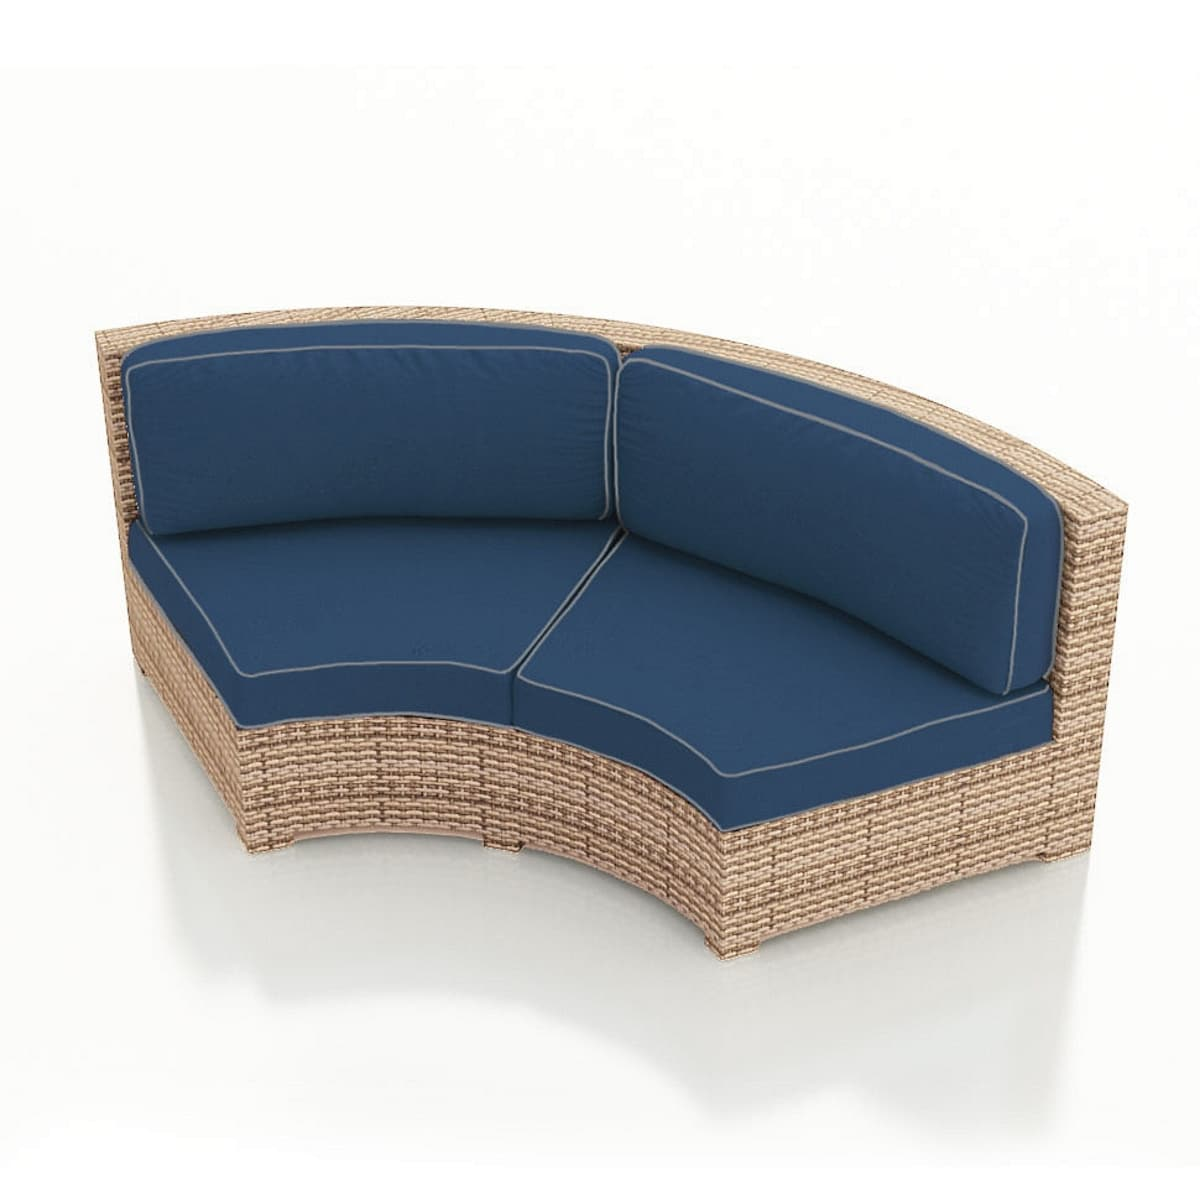 Hampton Radius Curved Outdoor Patio Furniture Loveseat ...